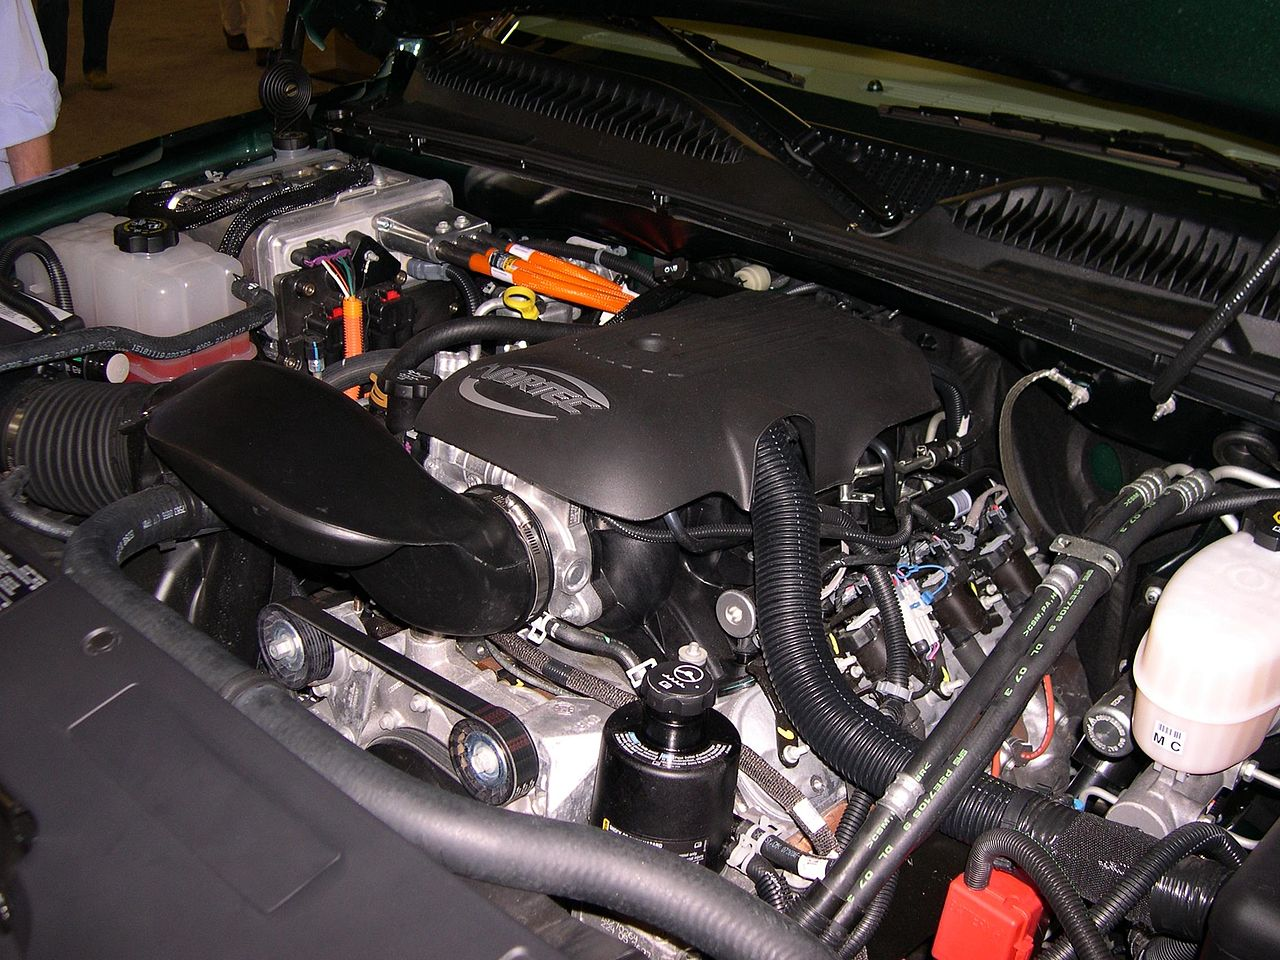 File2006 Gmc Sierra Hybrid Engine Wikimedia Commons 1995 Chevy Monte Carlo Wiring Diagram